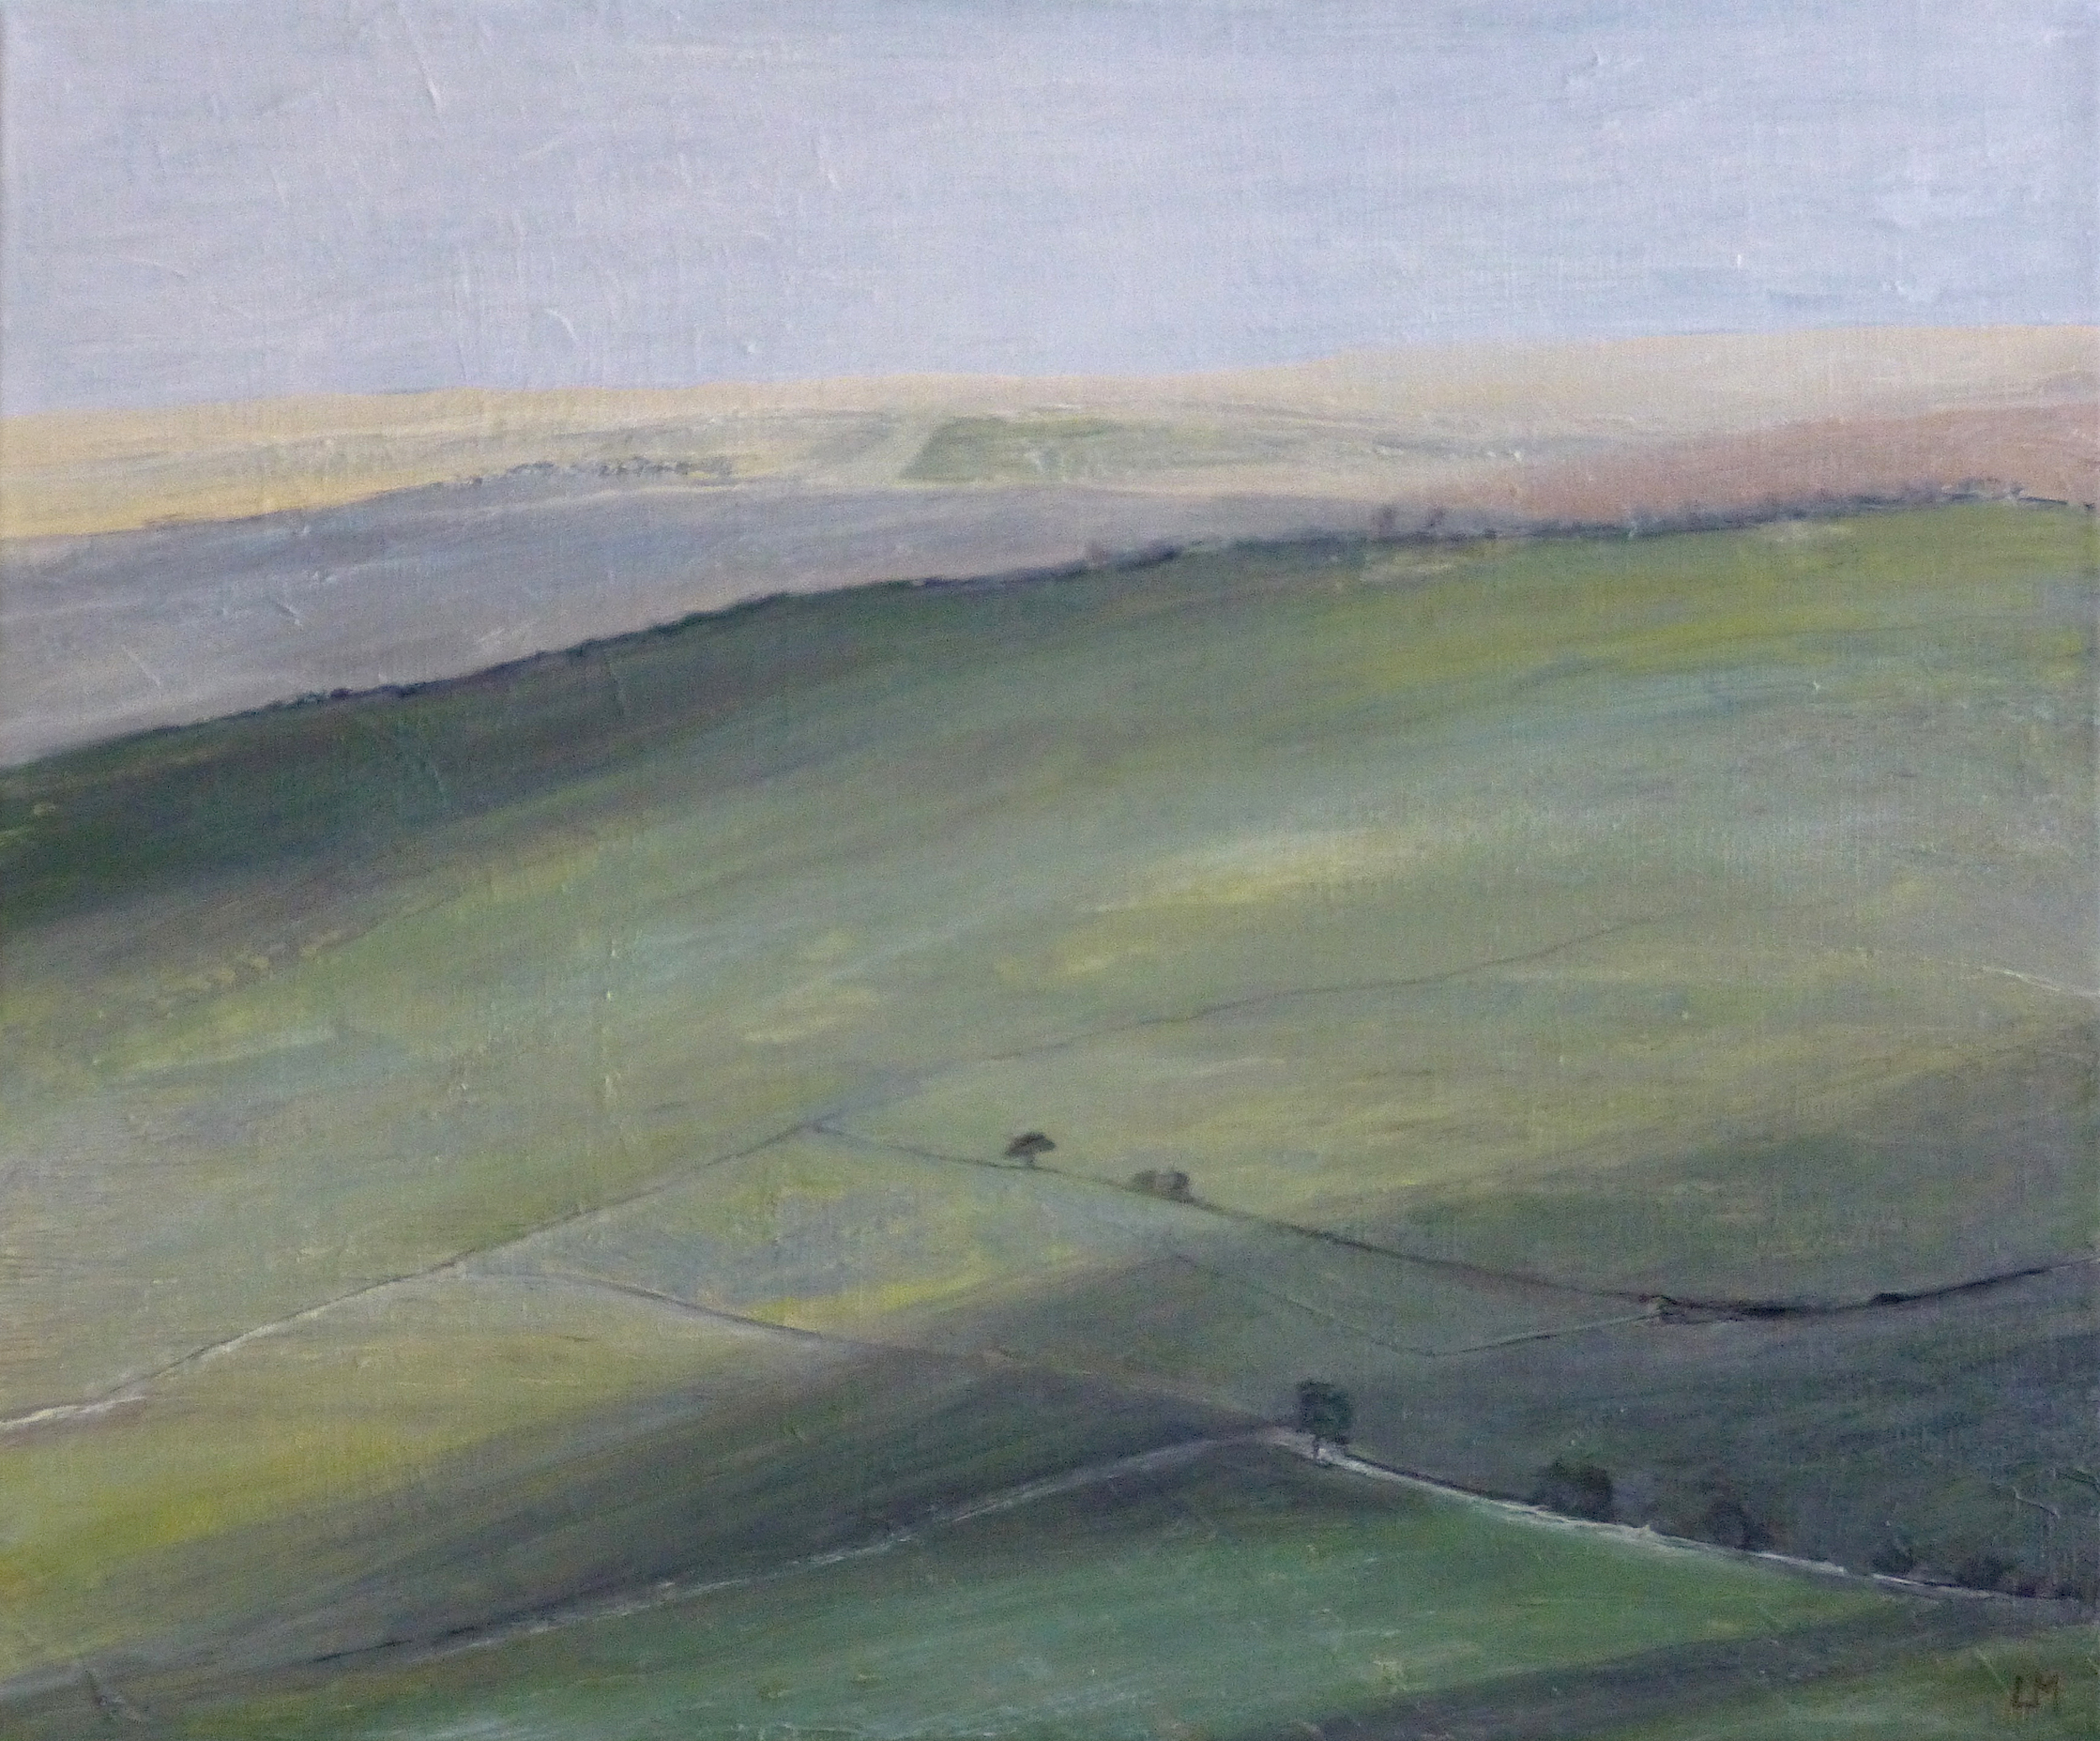 Artist: Luella Martin  Title: Downlands with Cloud Shadows  Size: 38 x 46 cm  Medium: Oil on linen  Price: £950   Buy Now